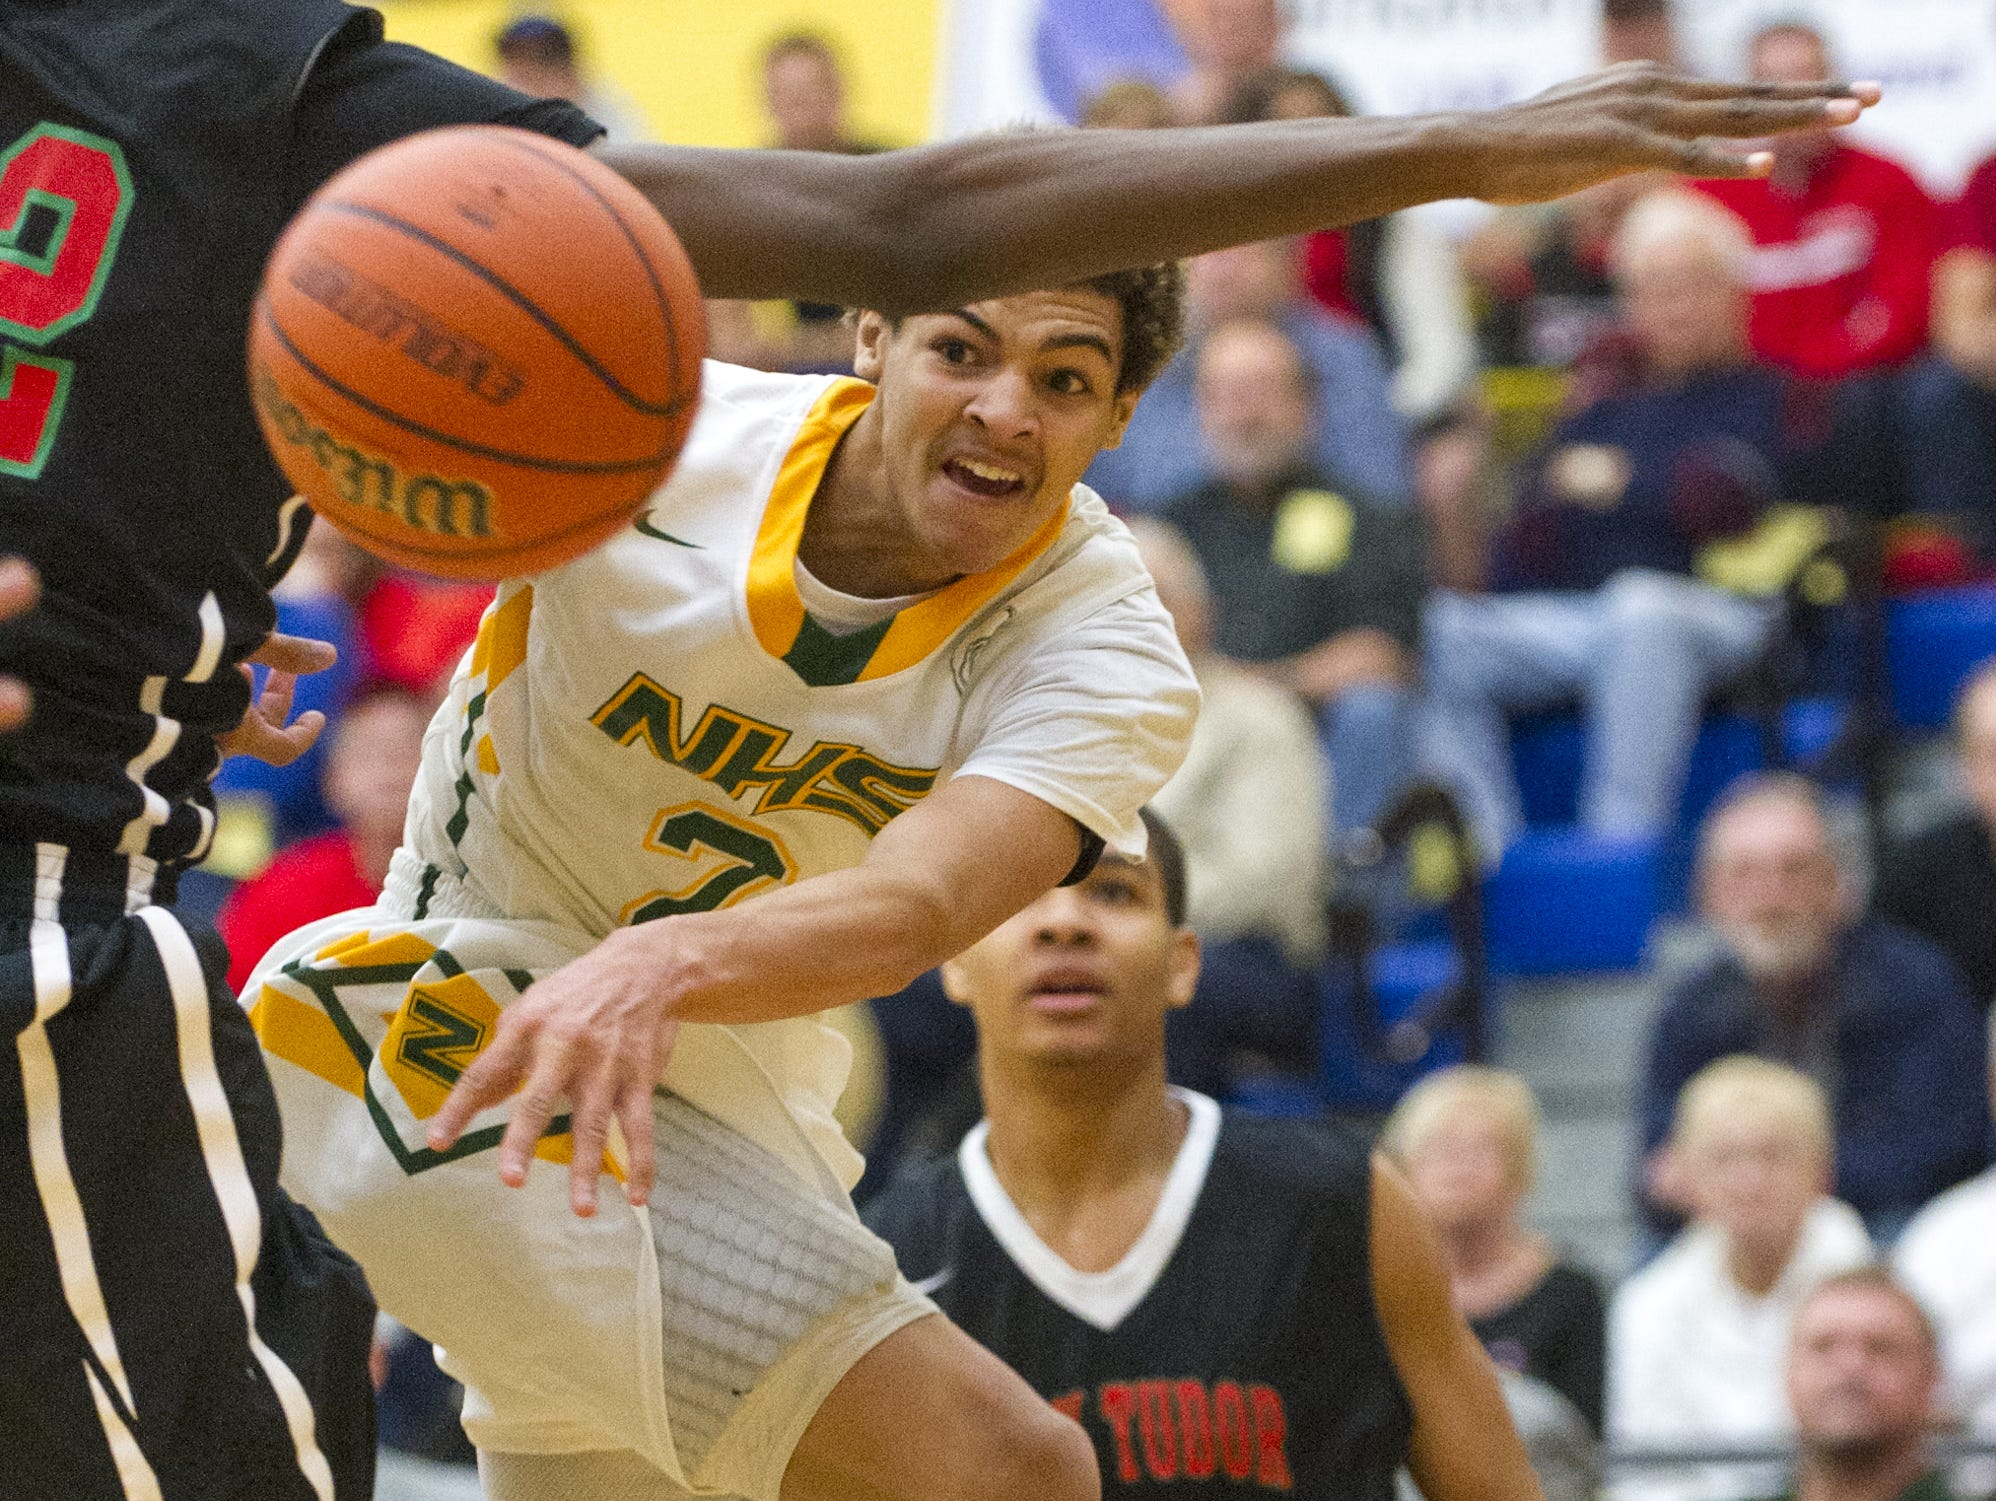 Northeastern High School sophomore Tyler Smith (2) fires off a pass after having his route to the basket blocked by Park Tudor High School sophomore Jaren Jackson, Jr. (32) during the first half of action. Greenfield-Central High School hosted the IHSAA Regional Boy's 2A Basketball tournament Saturday, March 14, 2015.